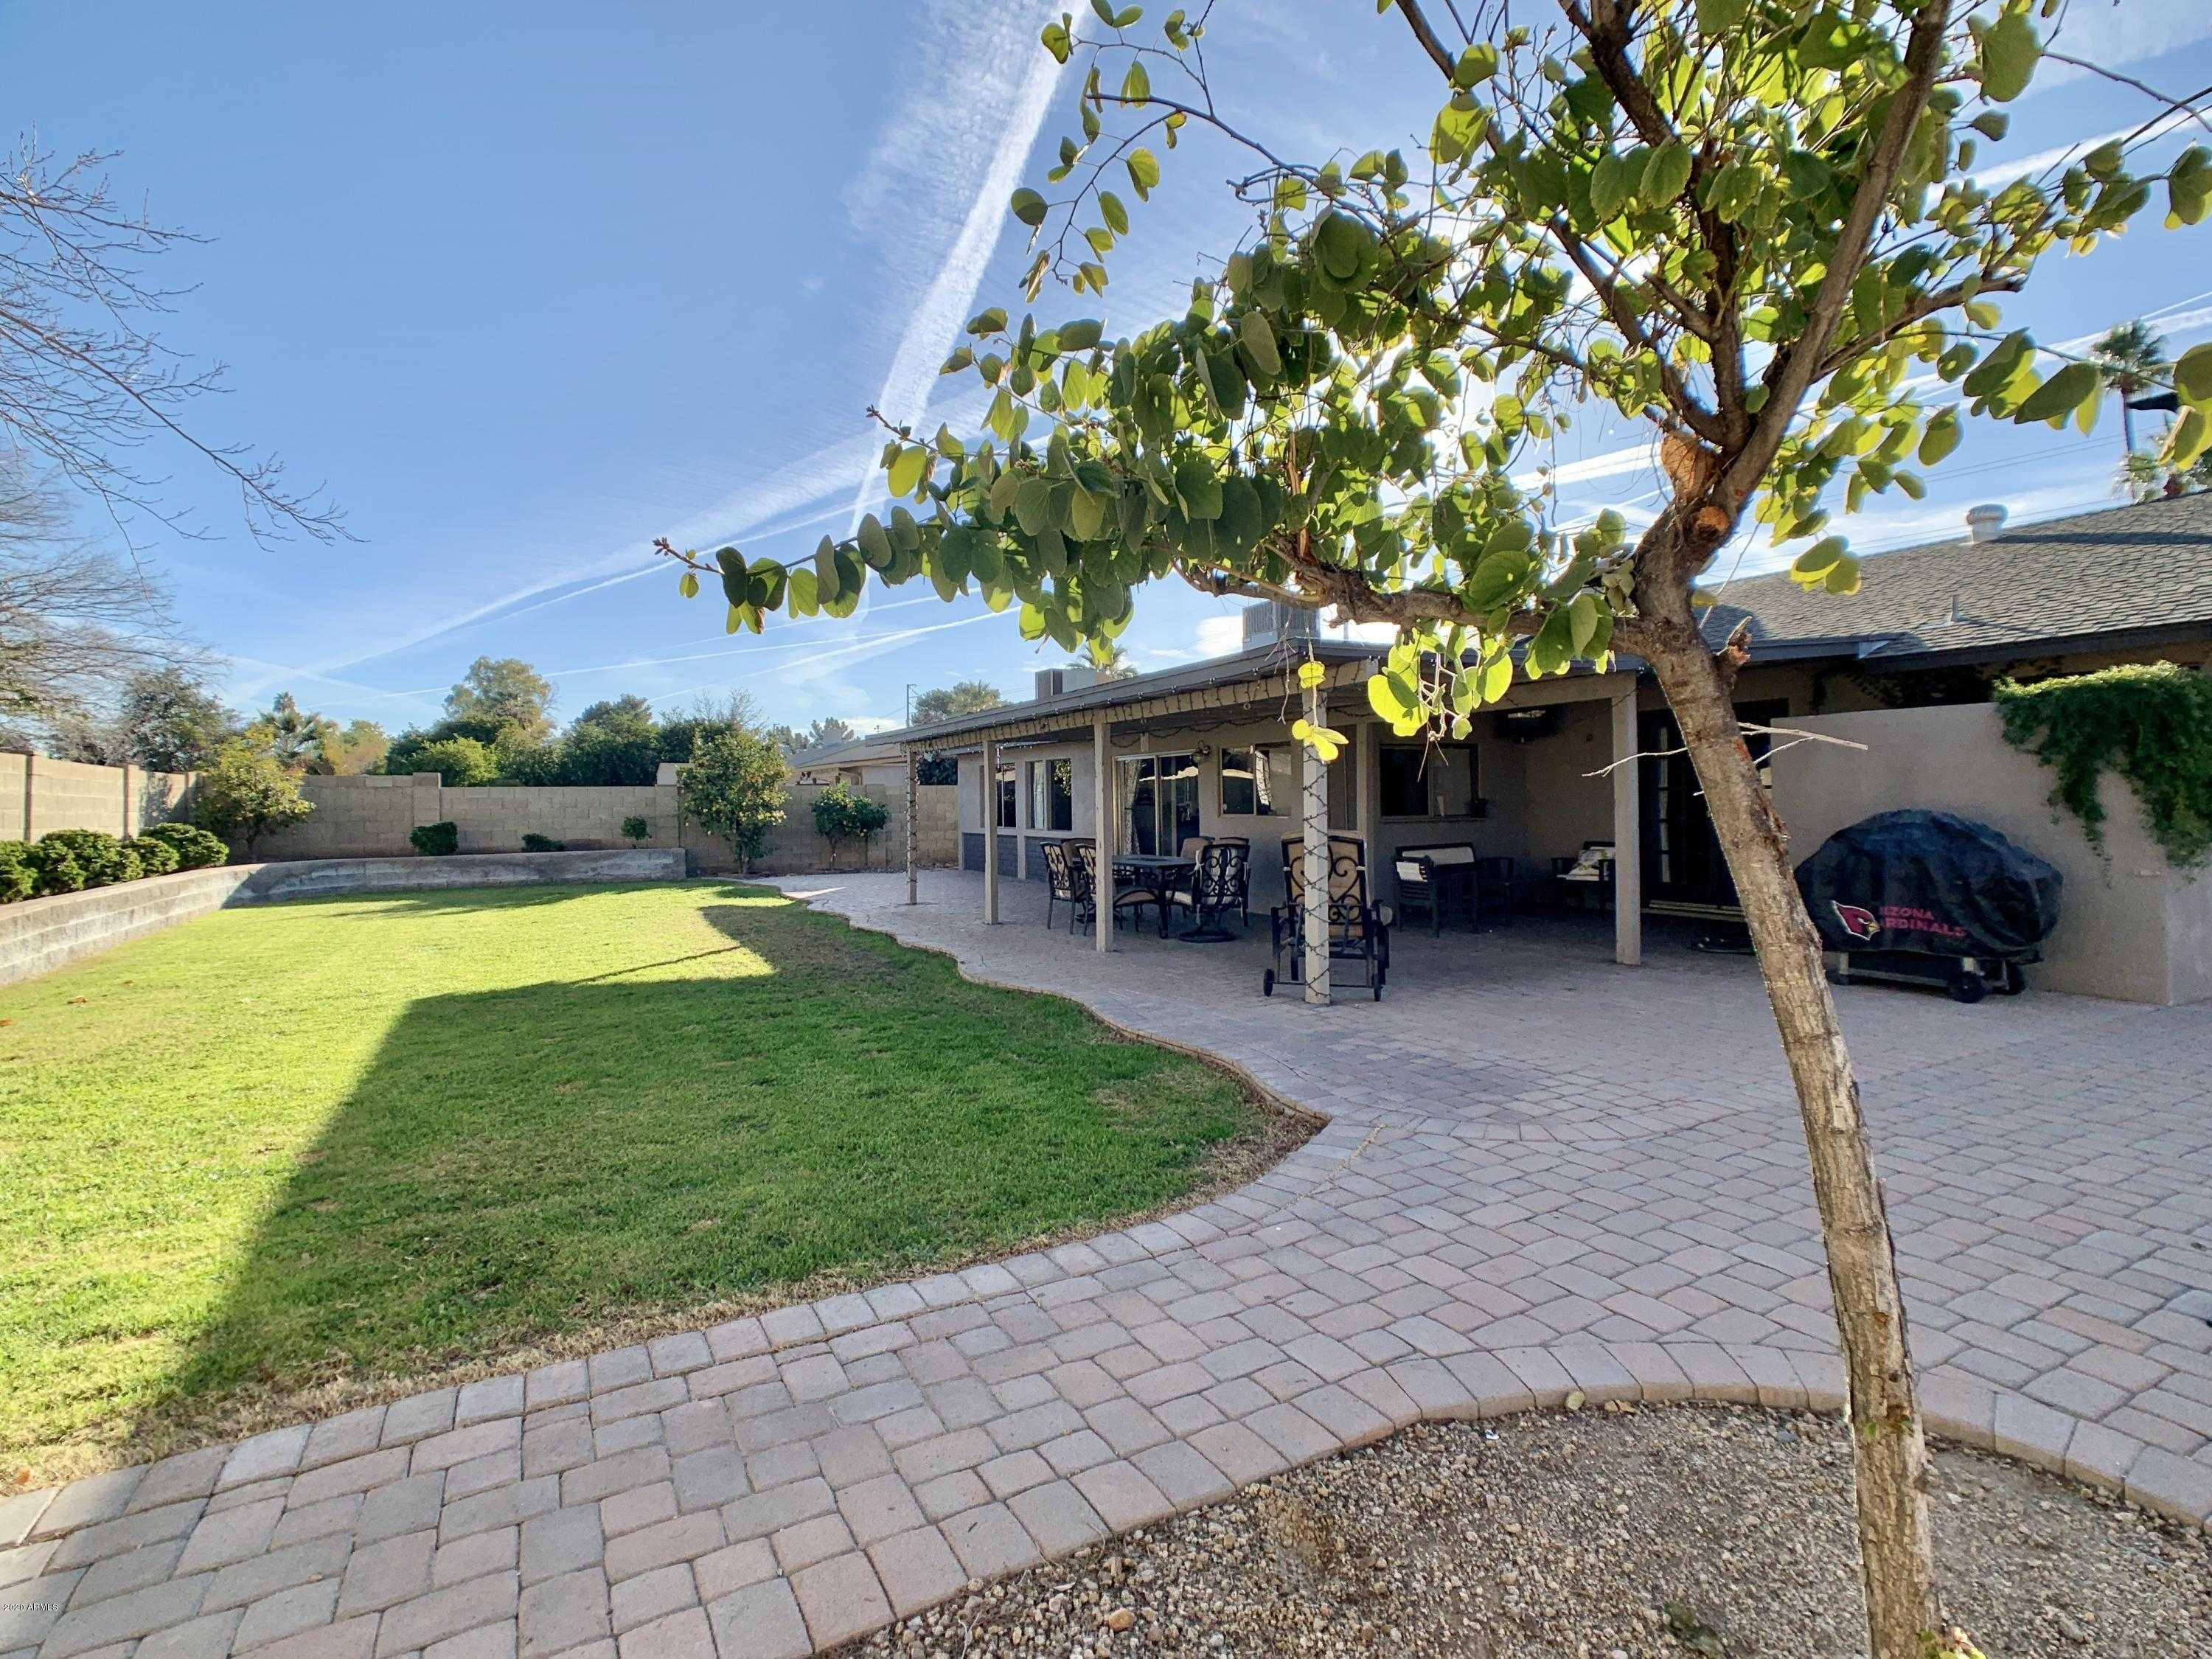 $318,000 - 4Br/2Ba - Home for Sale in Westerra Lot 1-161 Tr A-b, Glendale